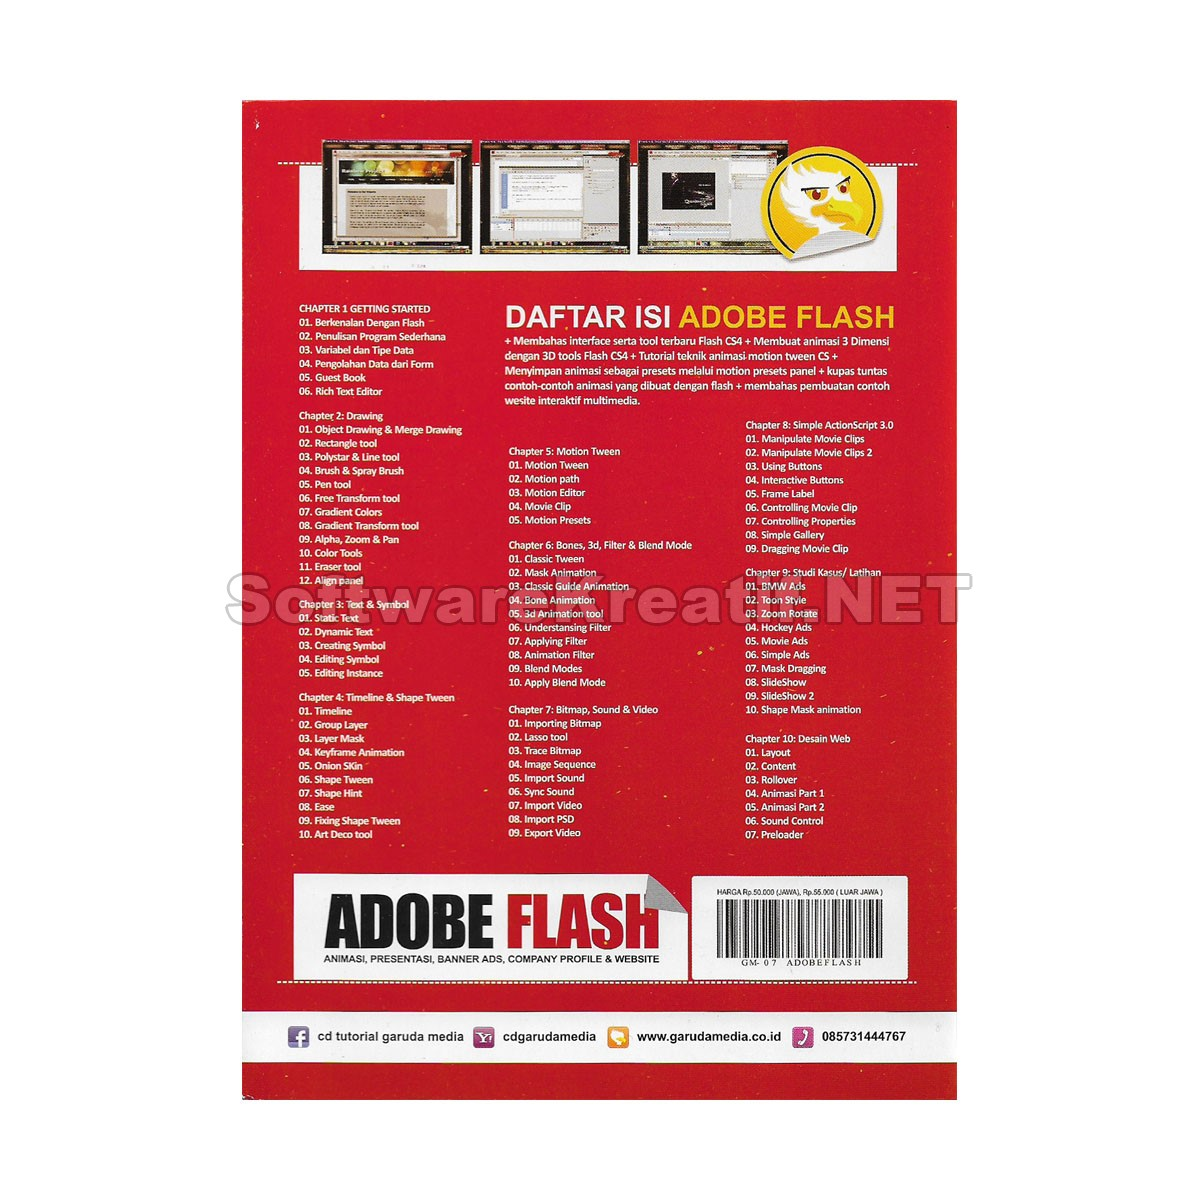 Jual Video Tutorial Adobe Flash Cs4 Membuat Animasi Presentasi